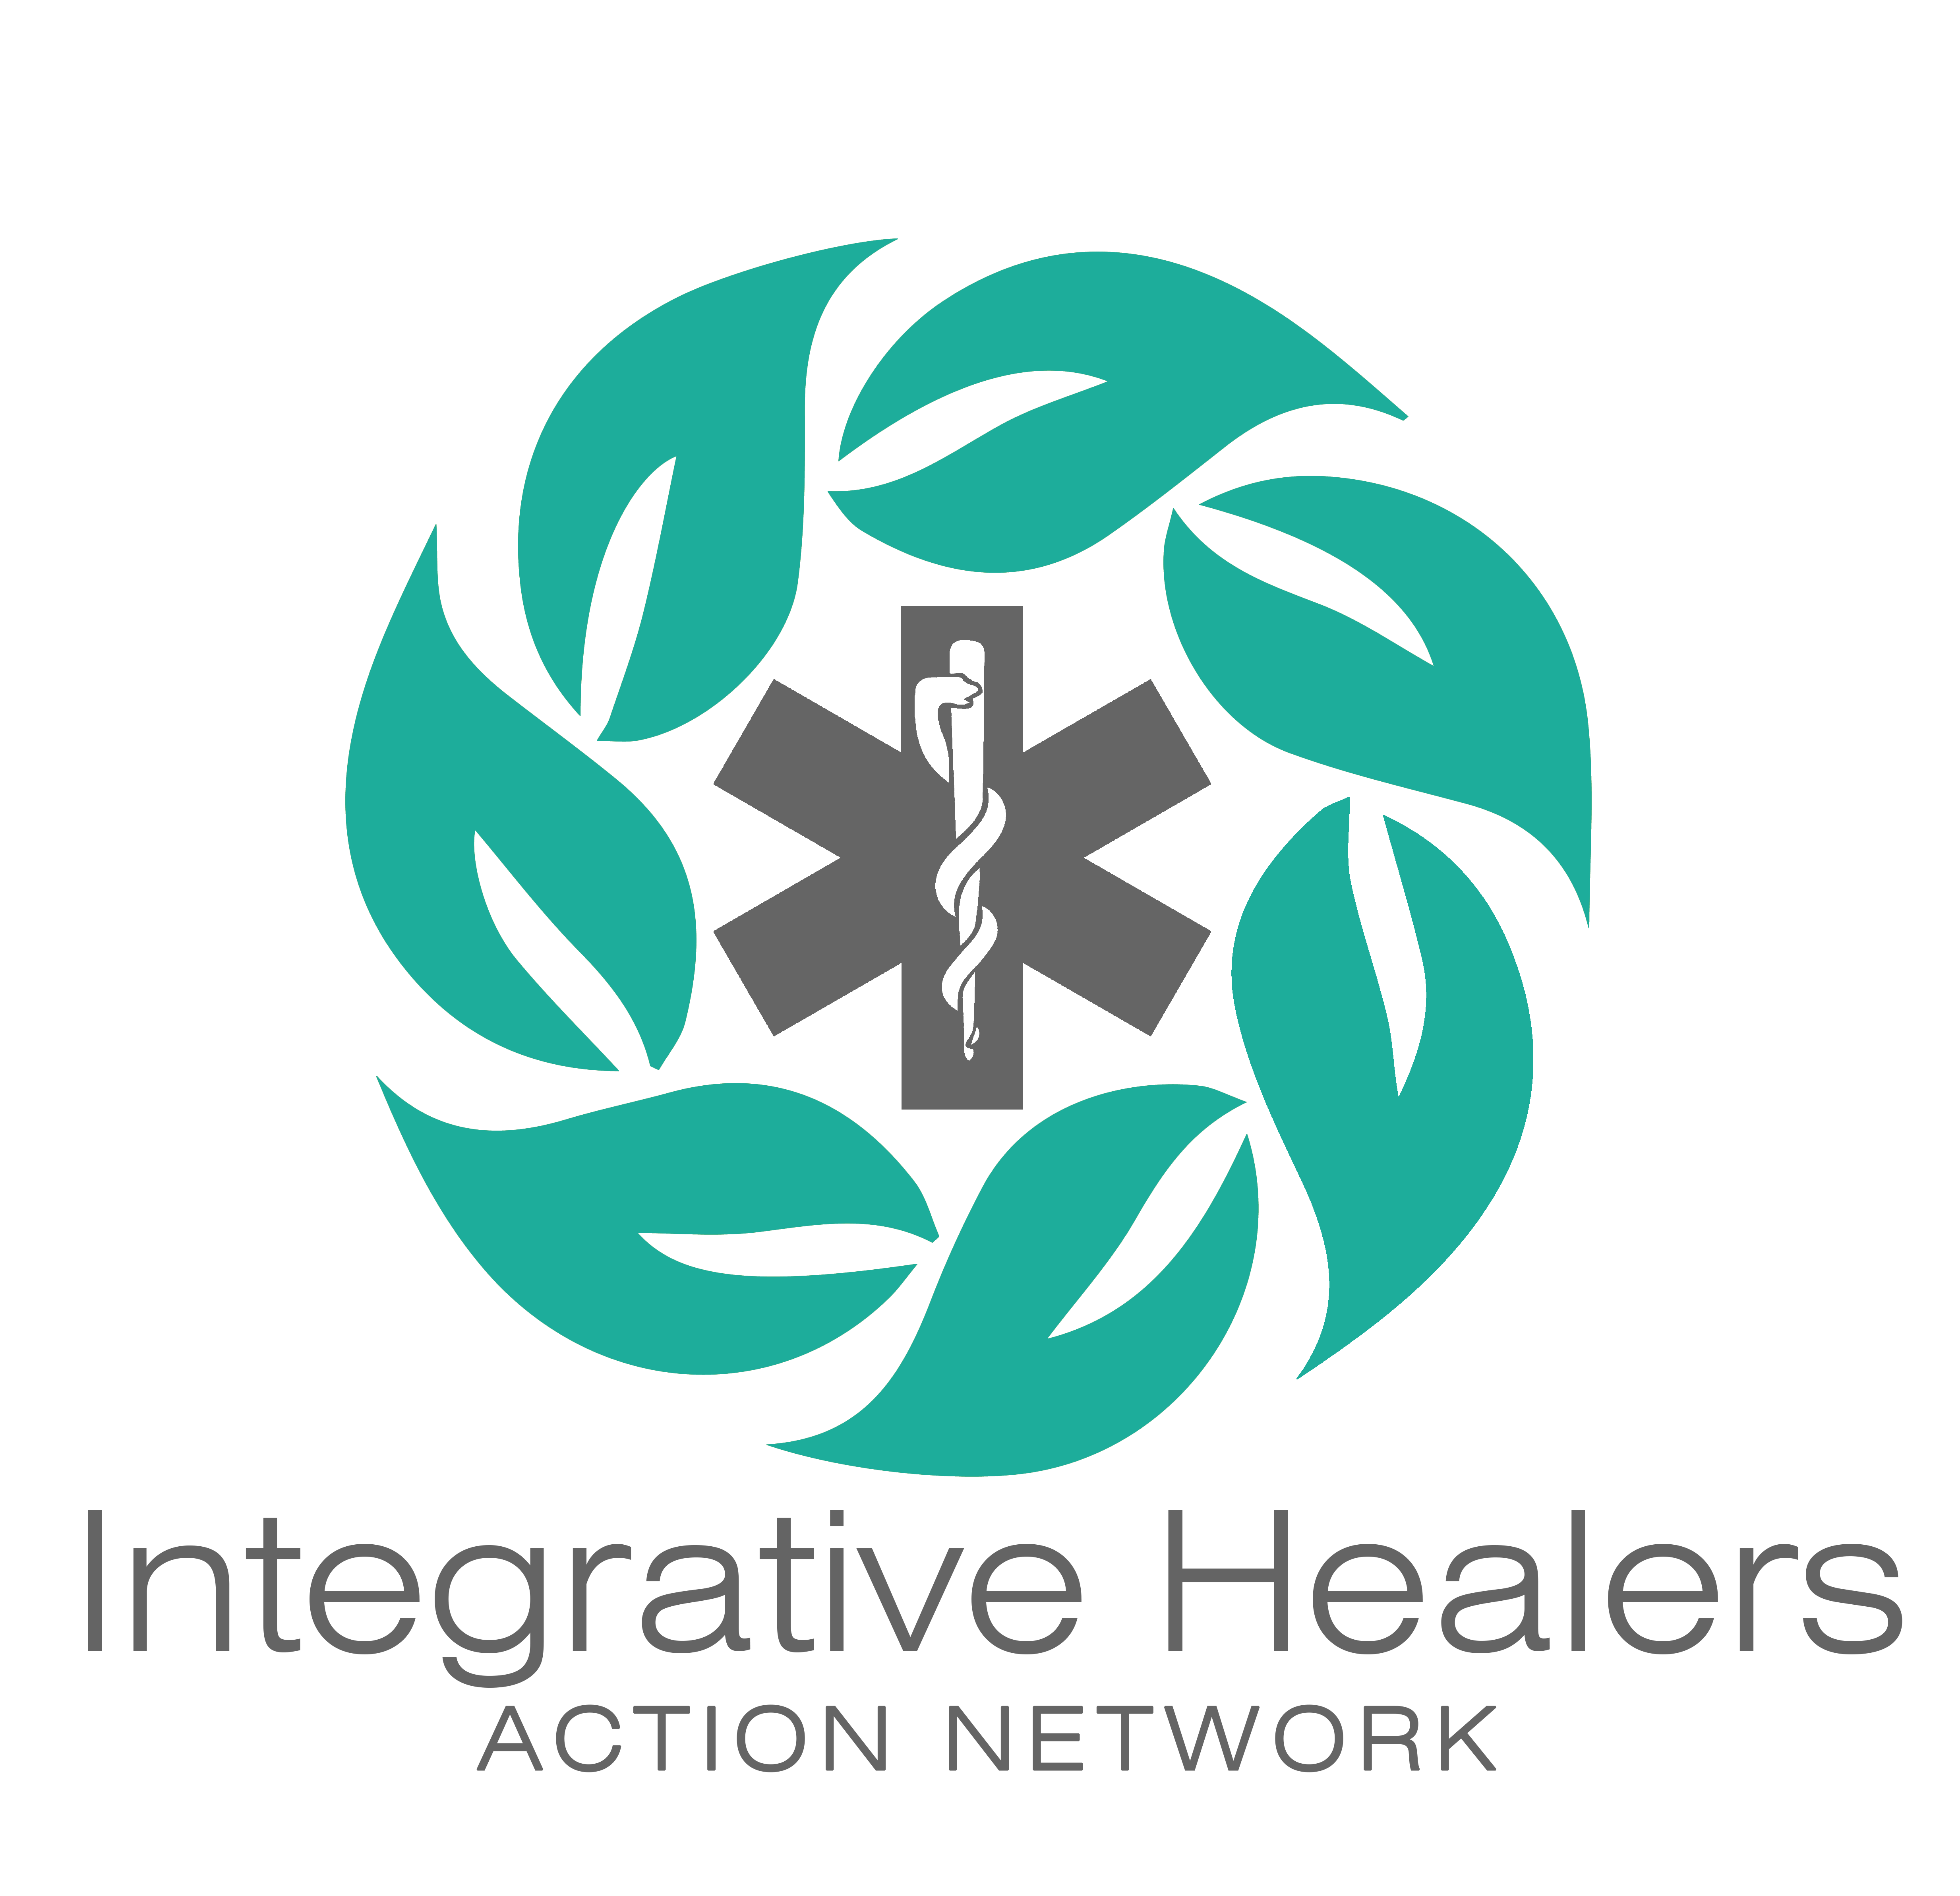 Integrative Healers Action Network